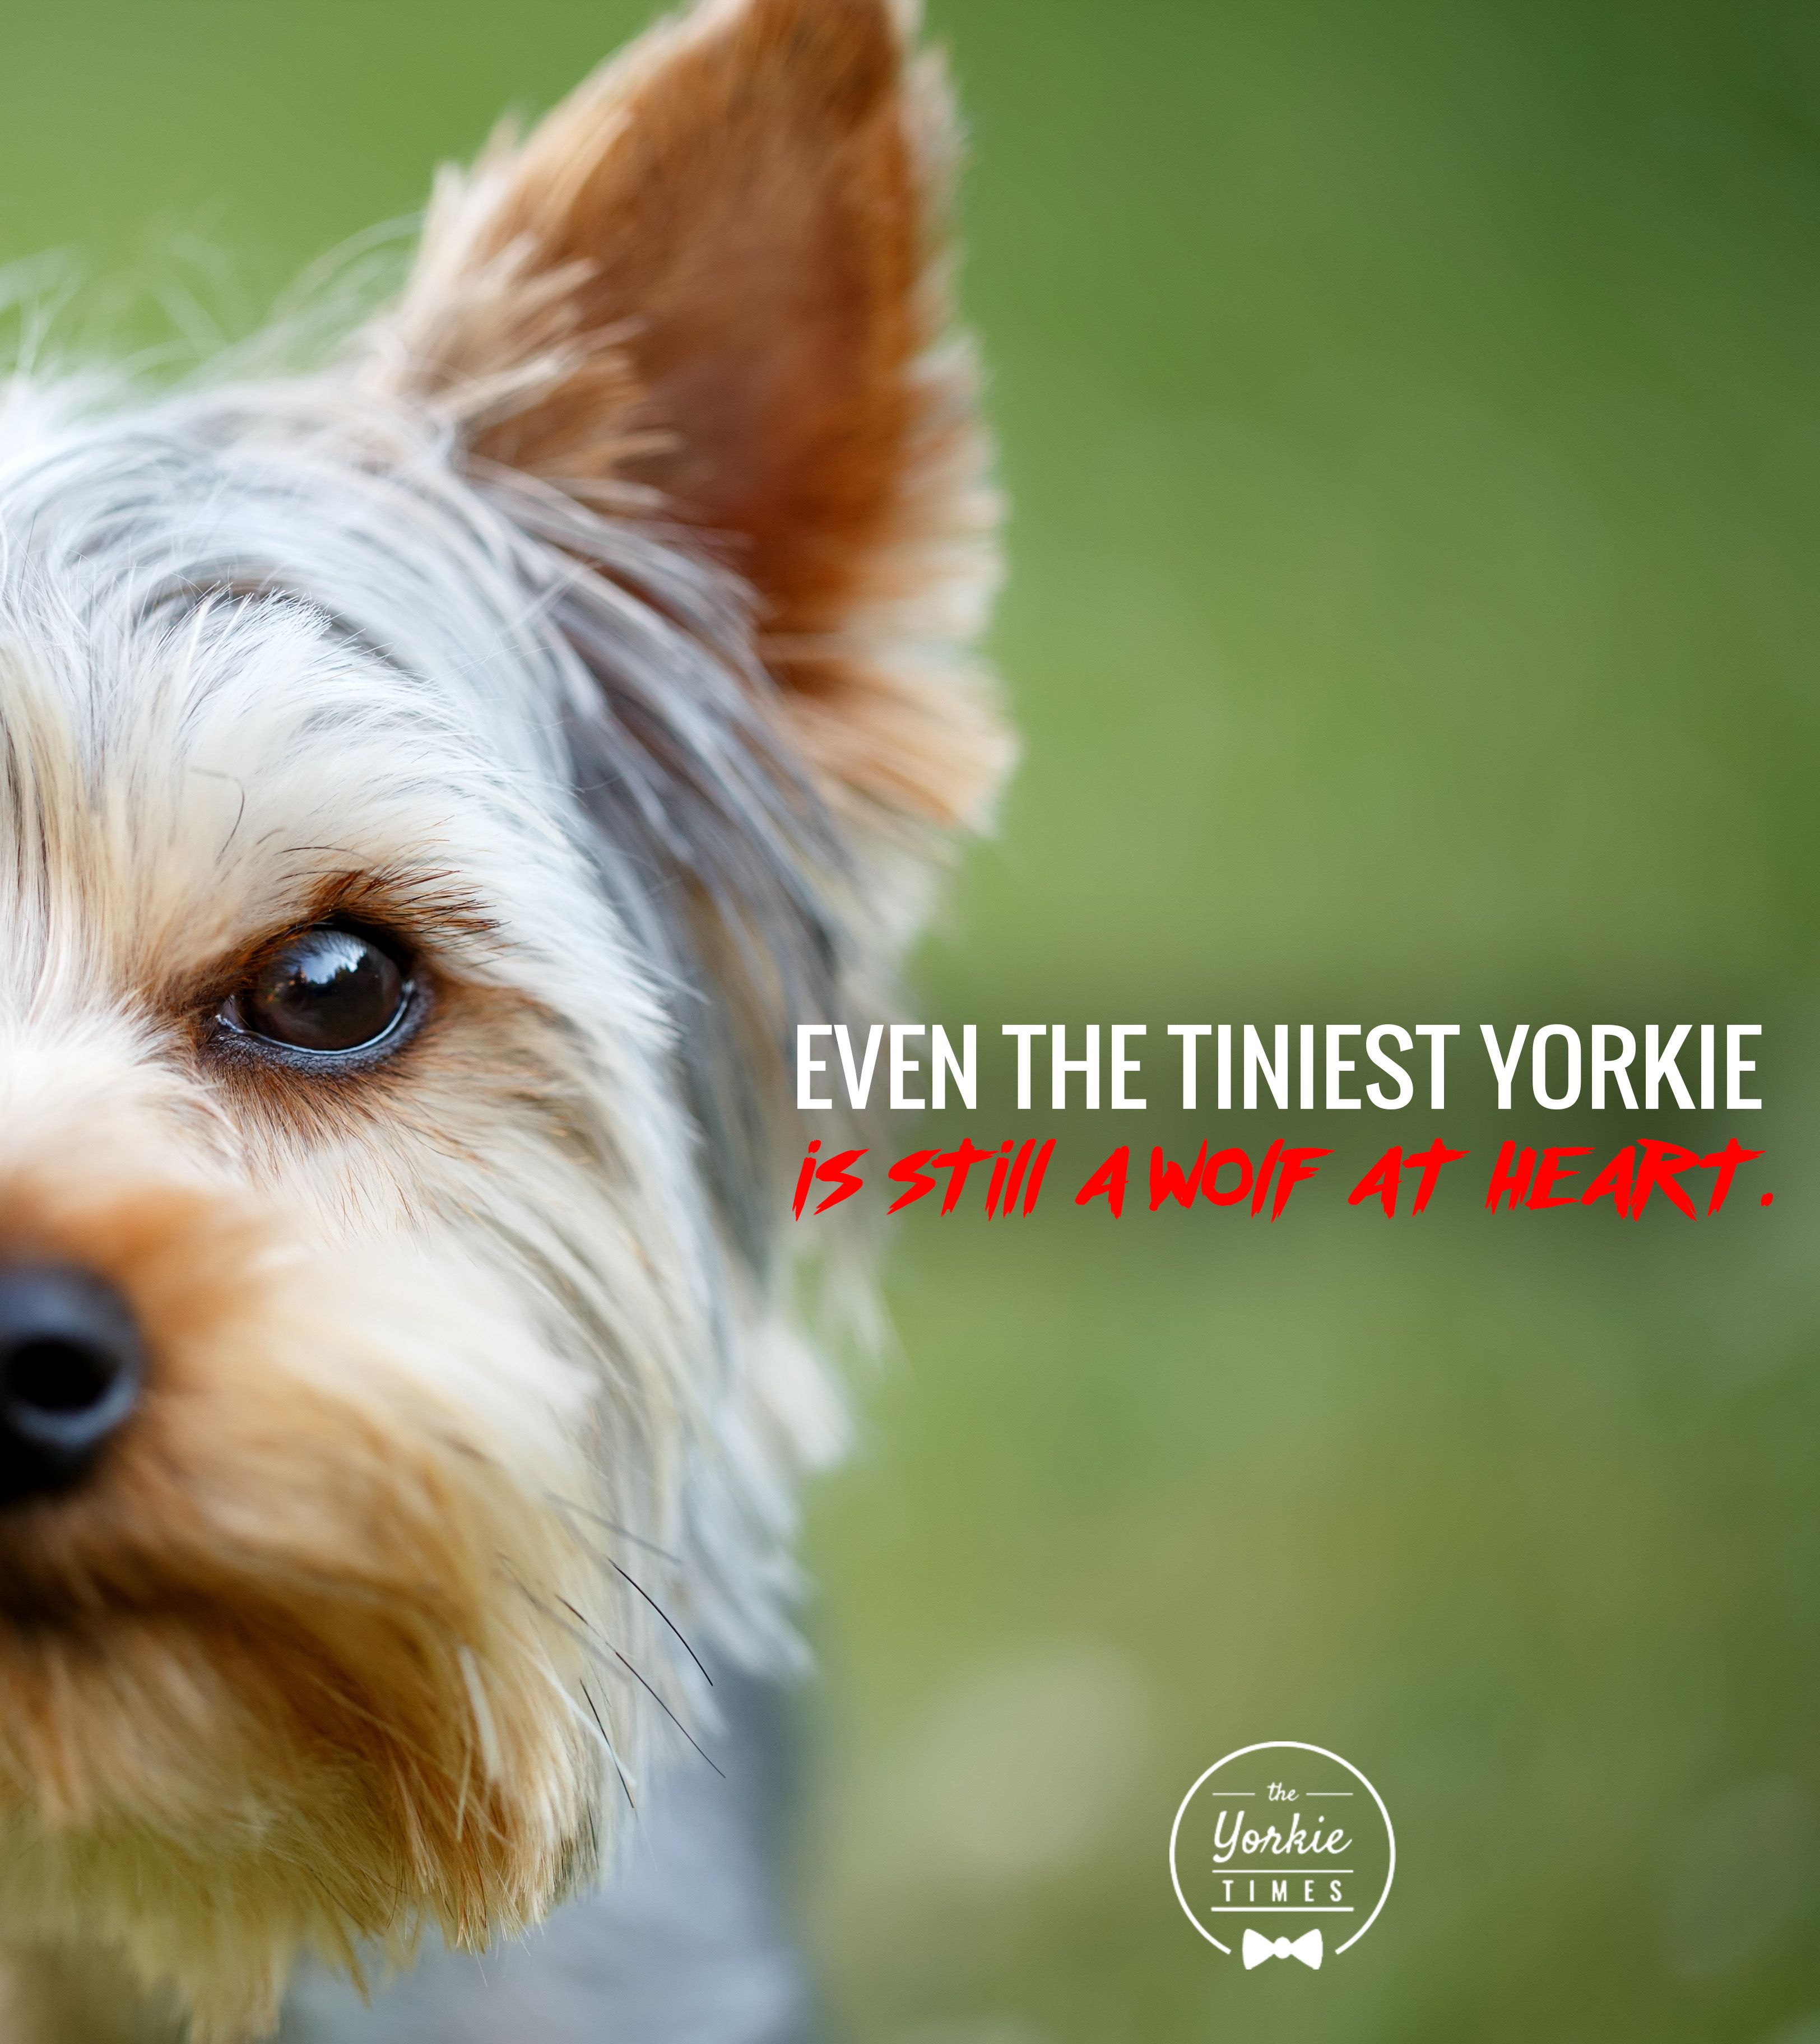 Heart Of A Wolf Yorkie Lovers Yorkie Yorkie Dogs